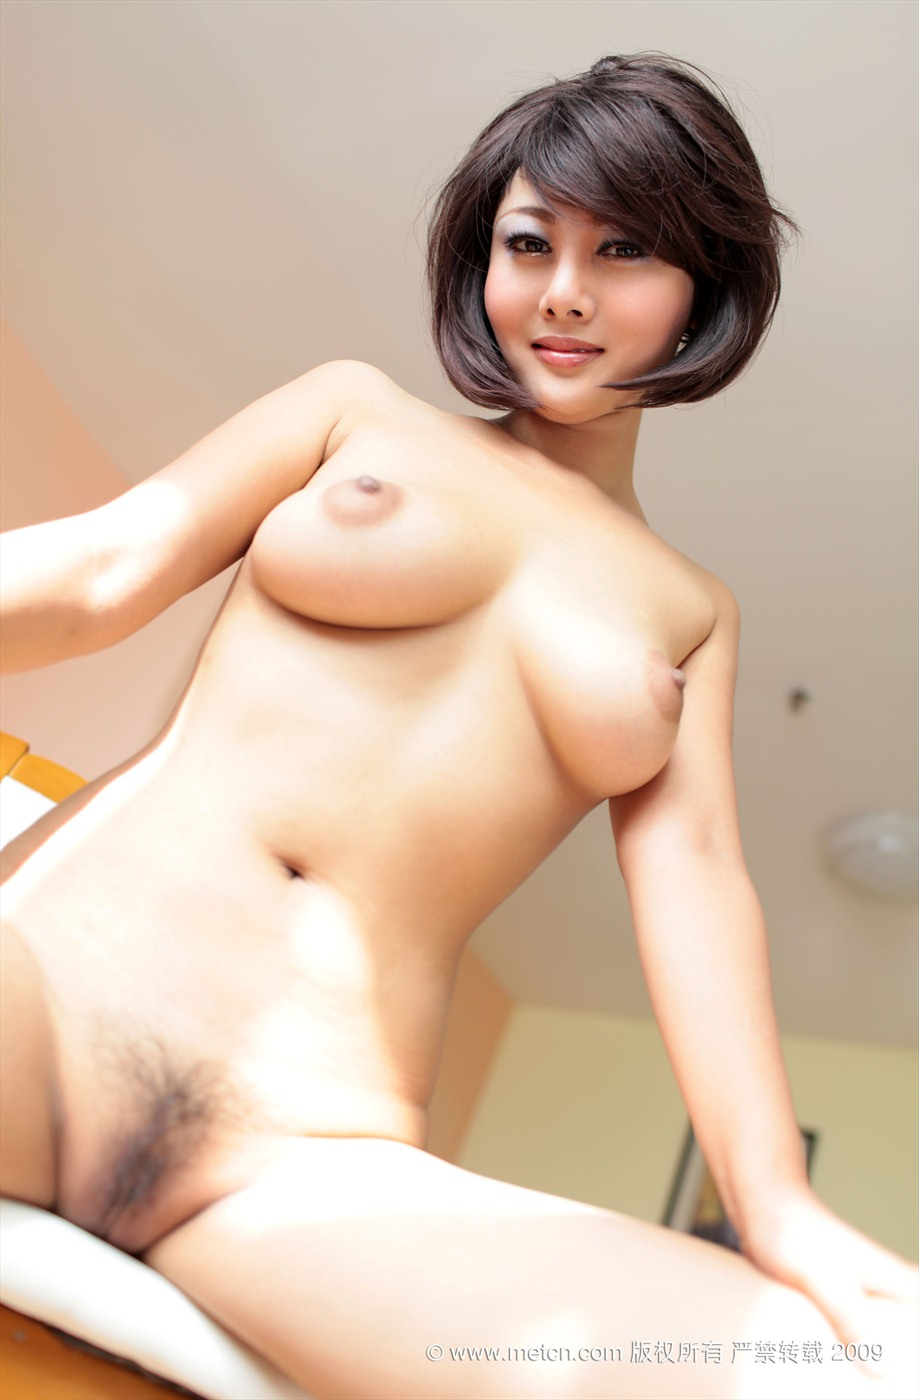 nude pussy pix Free Lesbian Pics and Hot Naked Lesbians Porn.